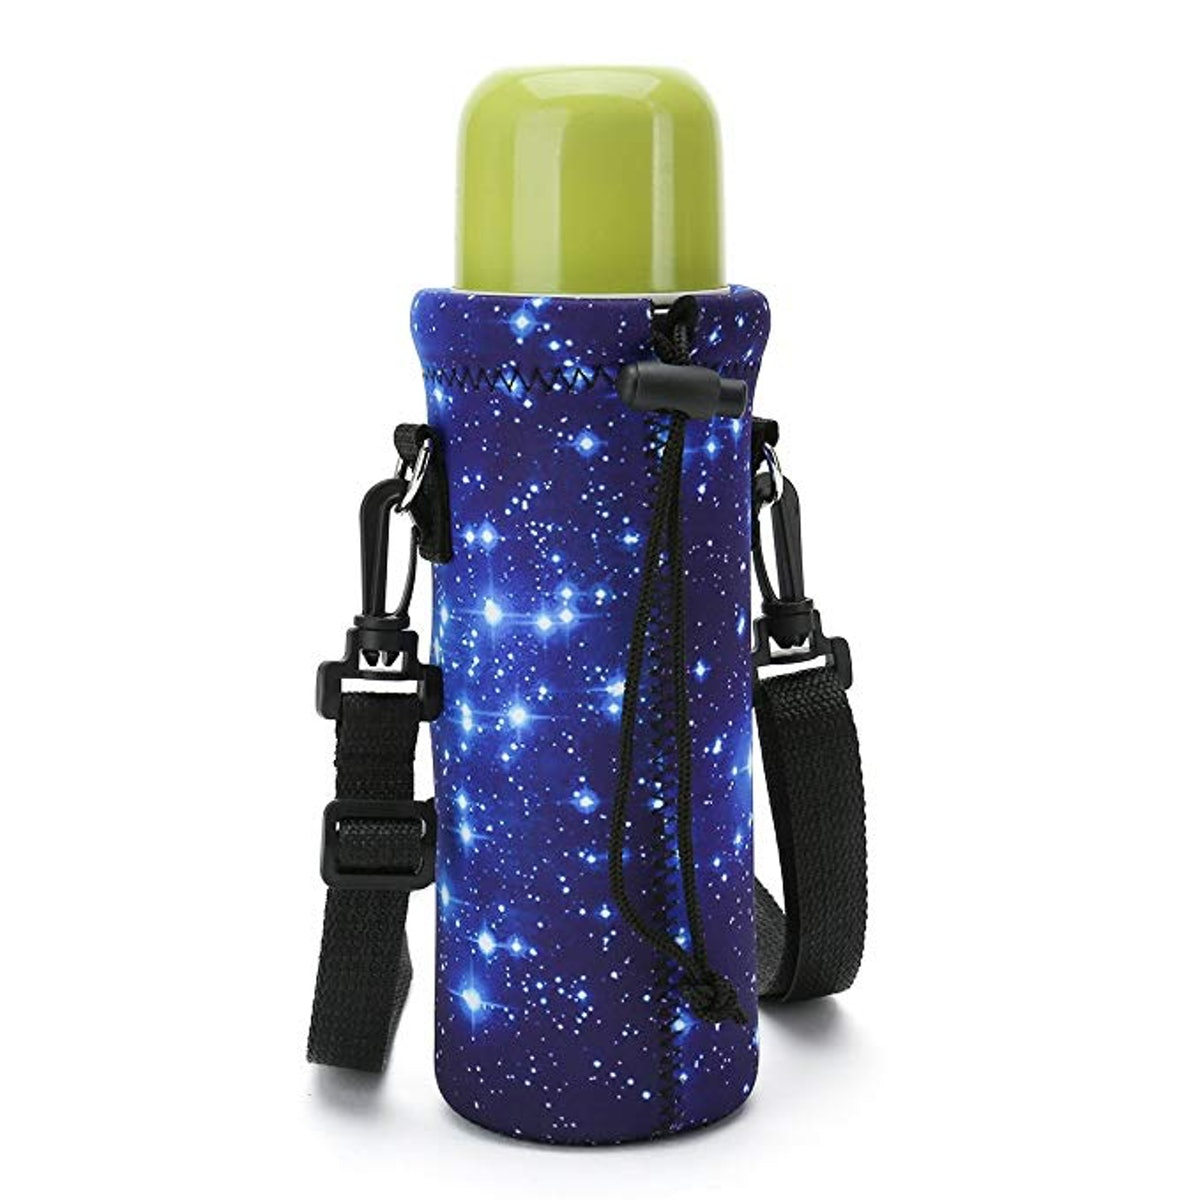 ICOLOR Water Bottle Carrier